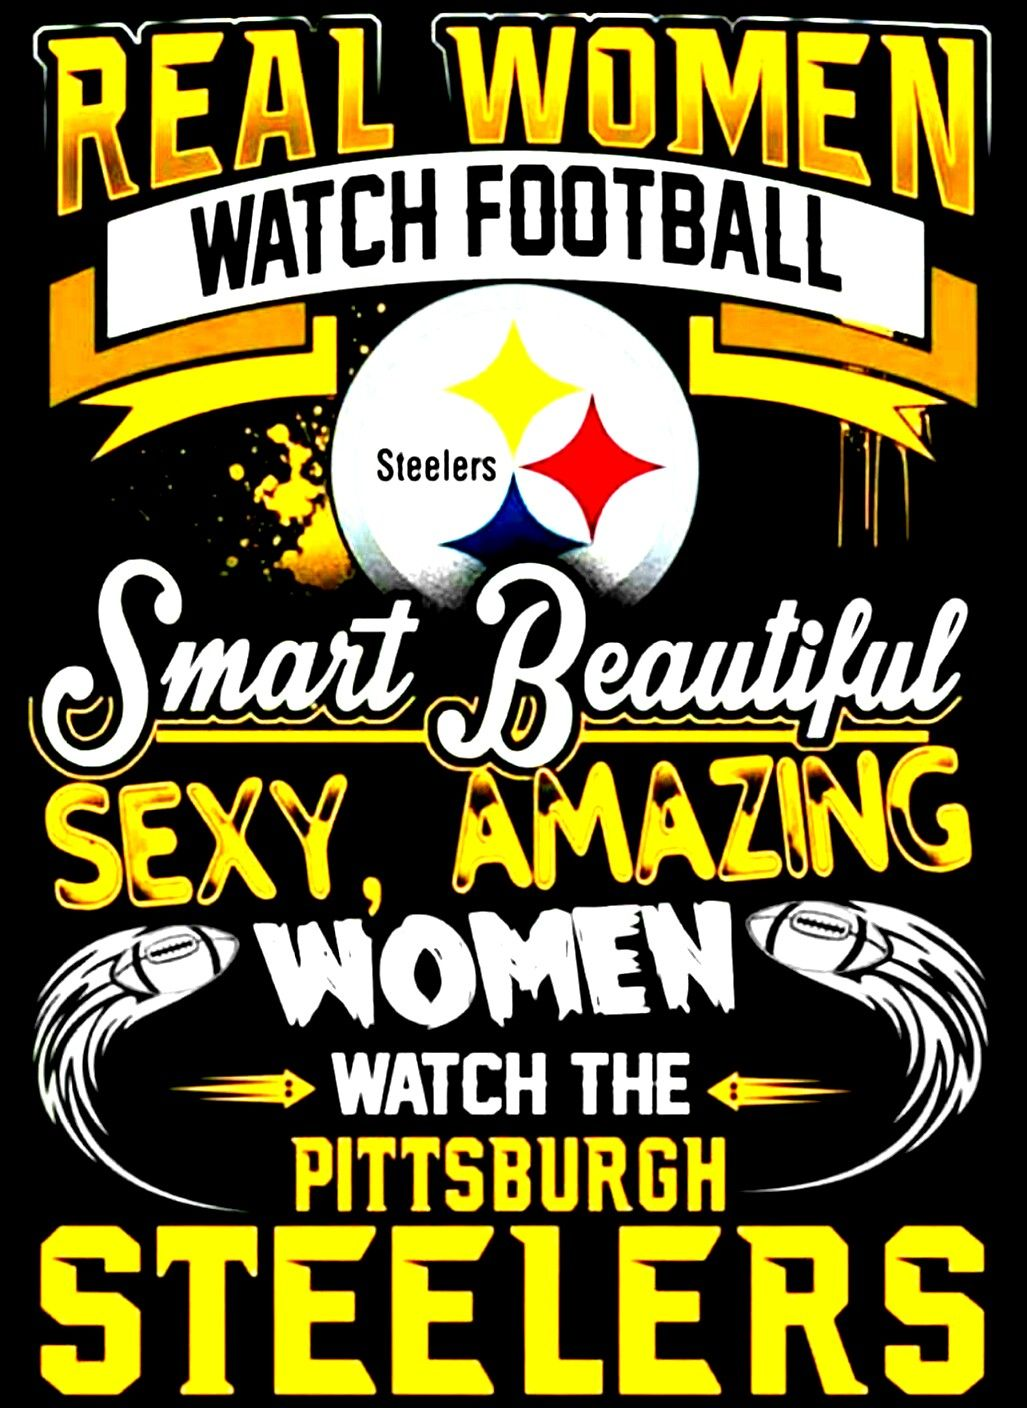 Pin by Pittsburgh Steelers Fanatics on Funny memes